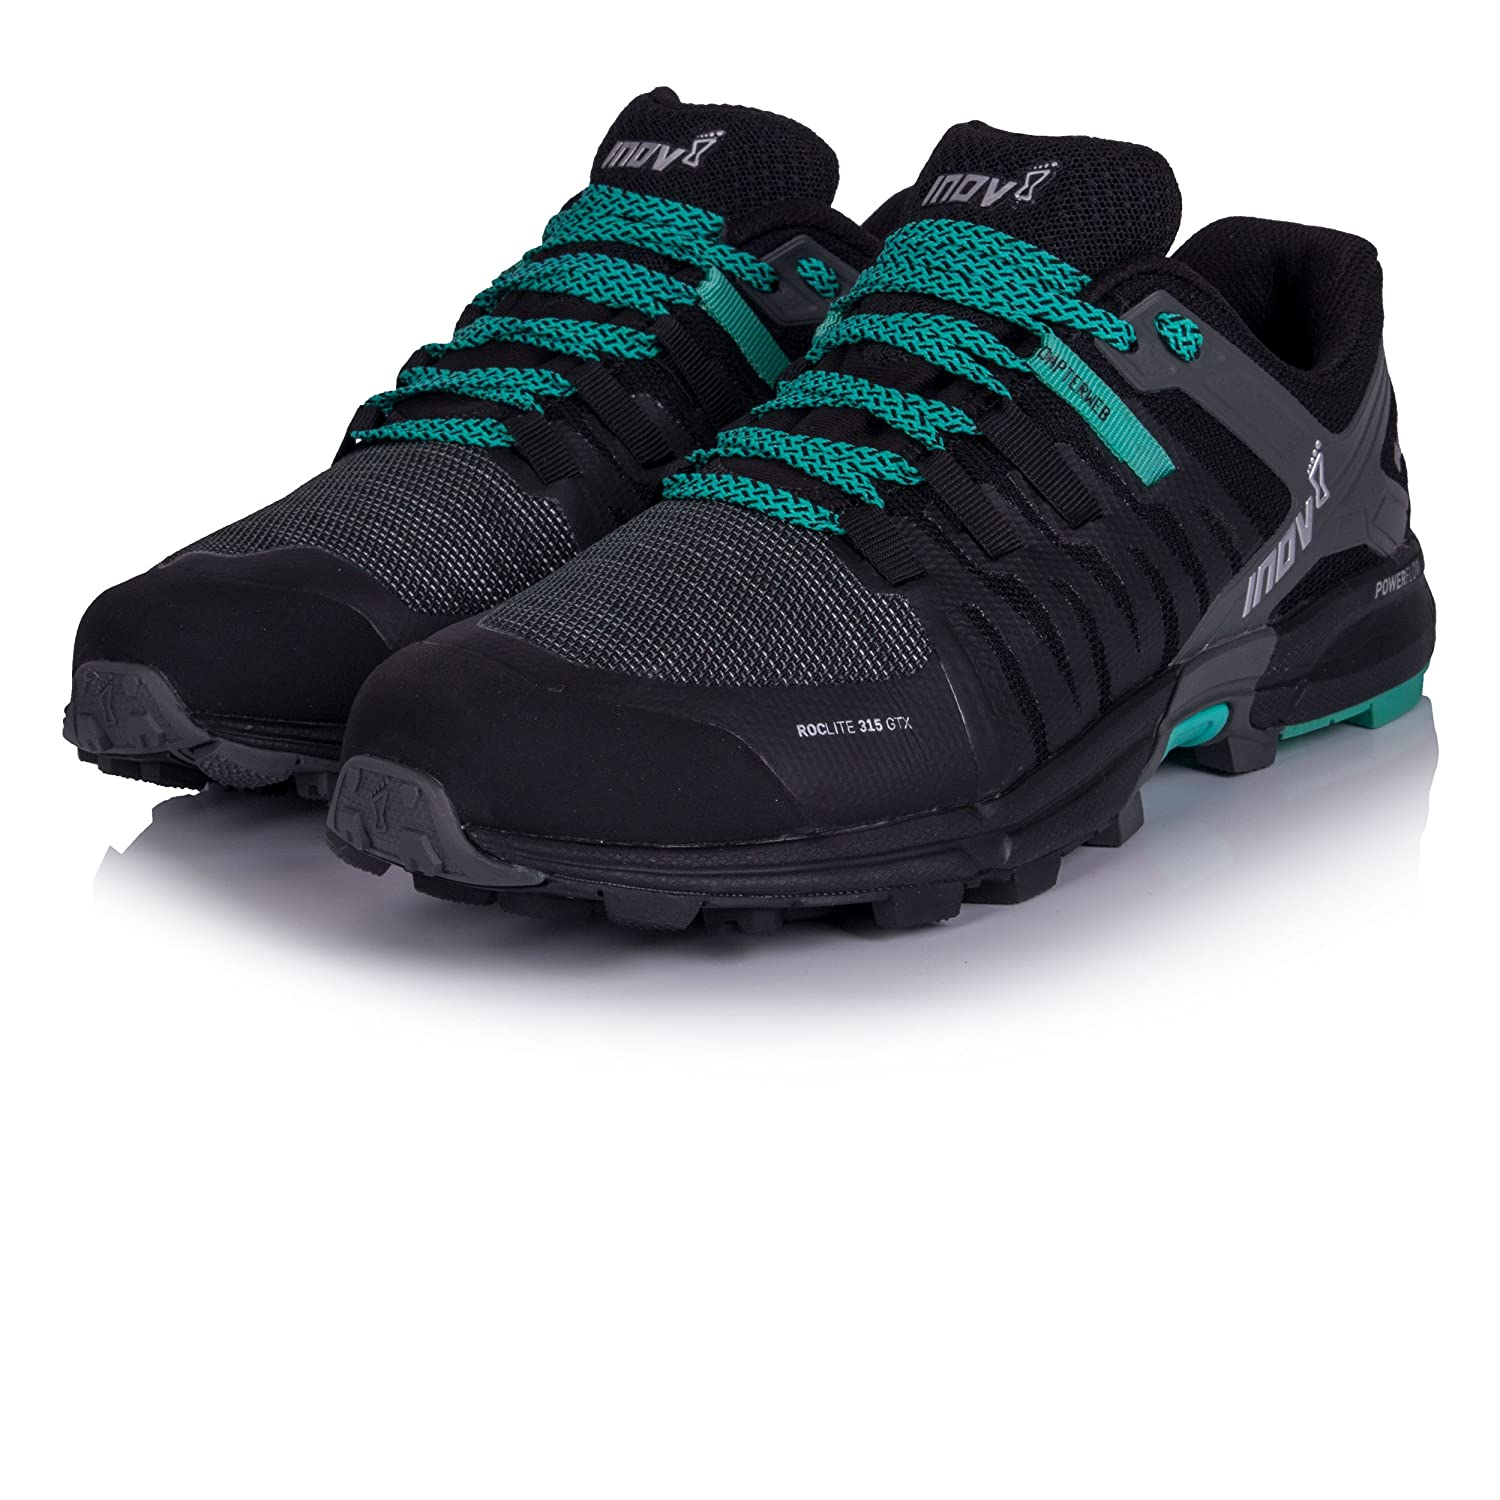 Inov-8 Women B077BSW88F Roclite 315 GTX Trail Running Shoes B077BSW88F Women 8.0 B(M) US|BLACK/TEAL 073bab